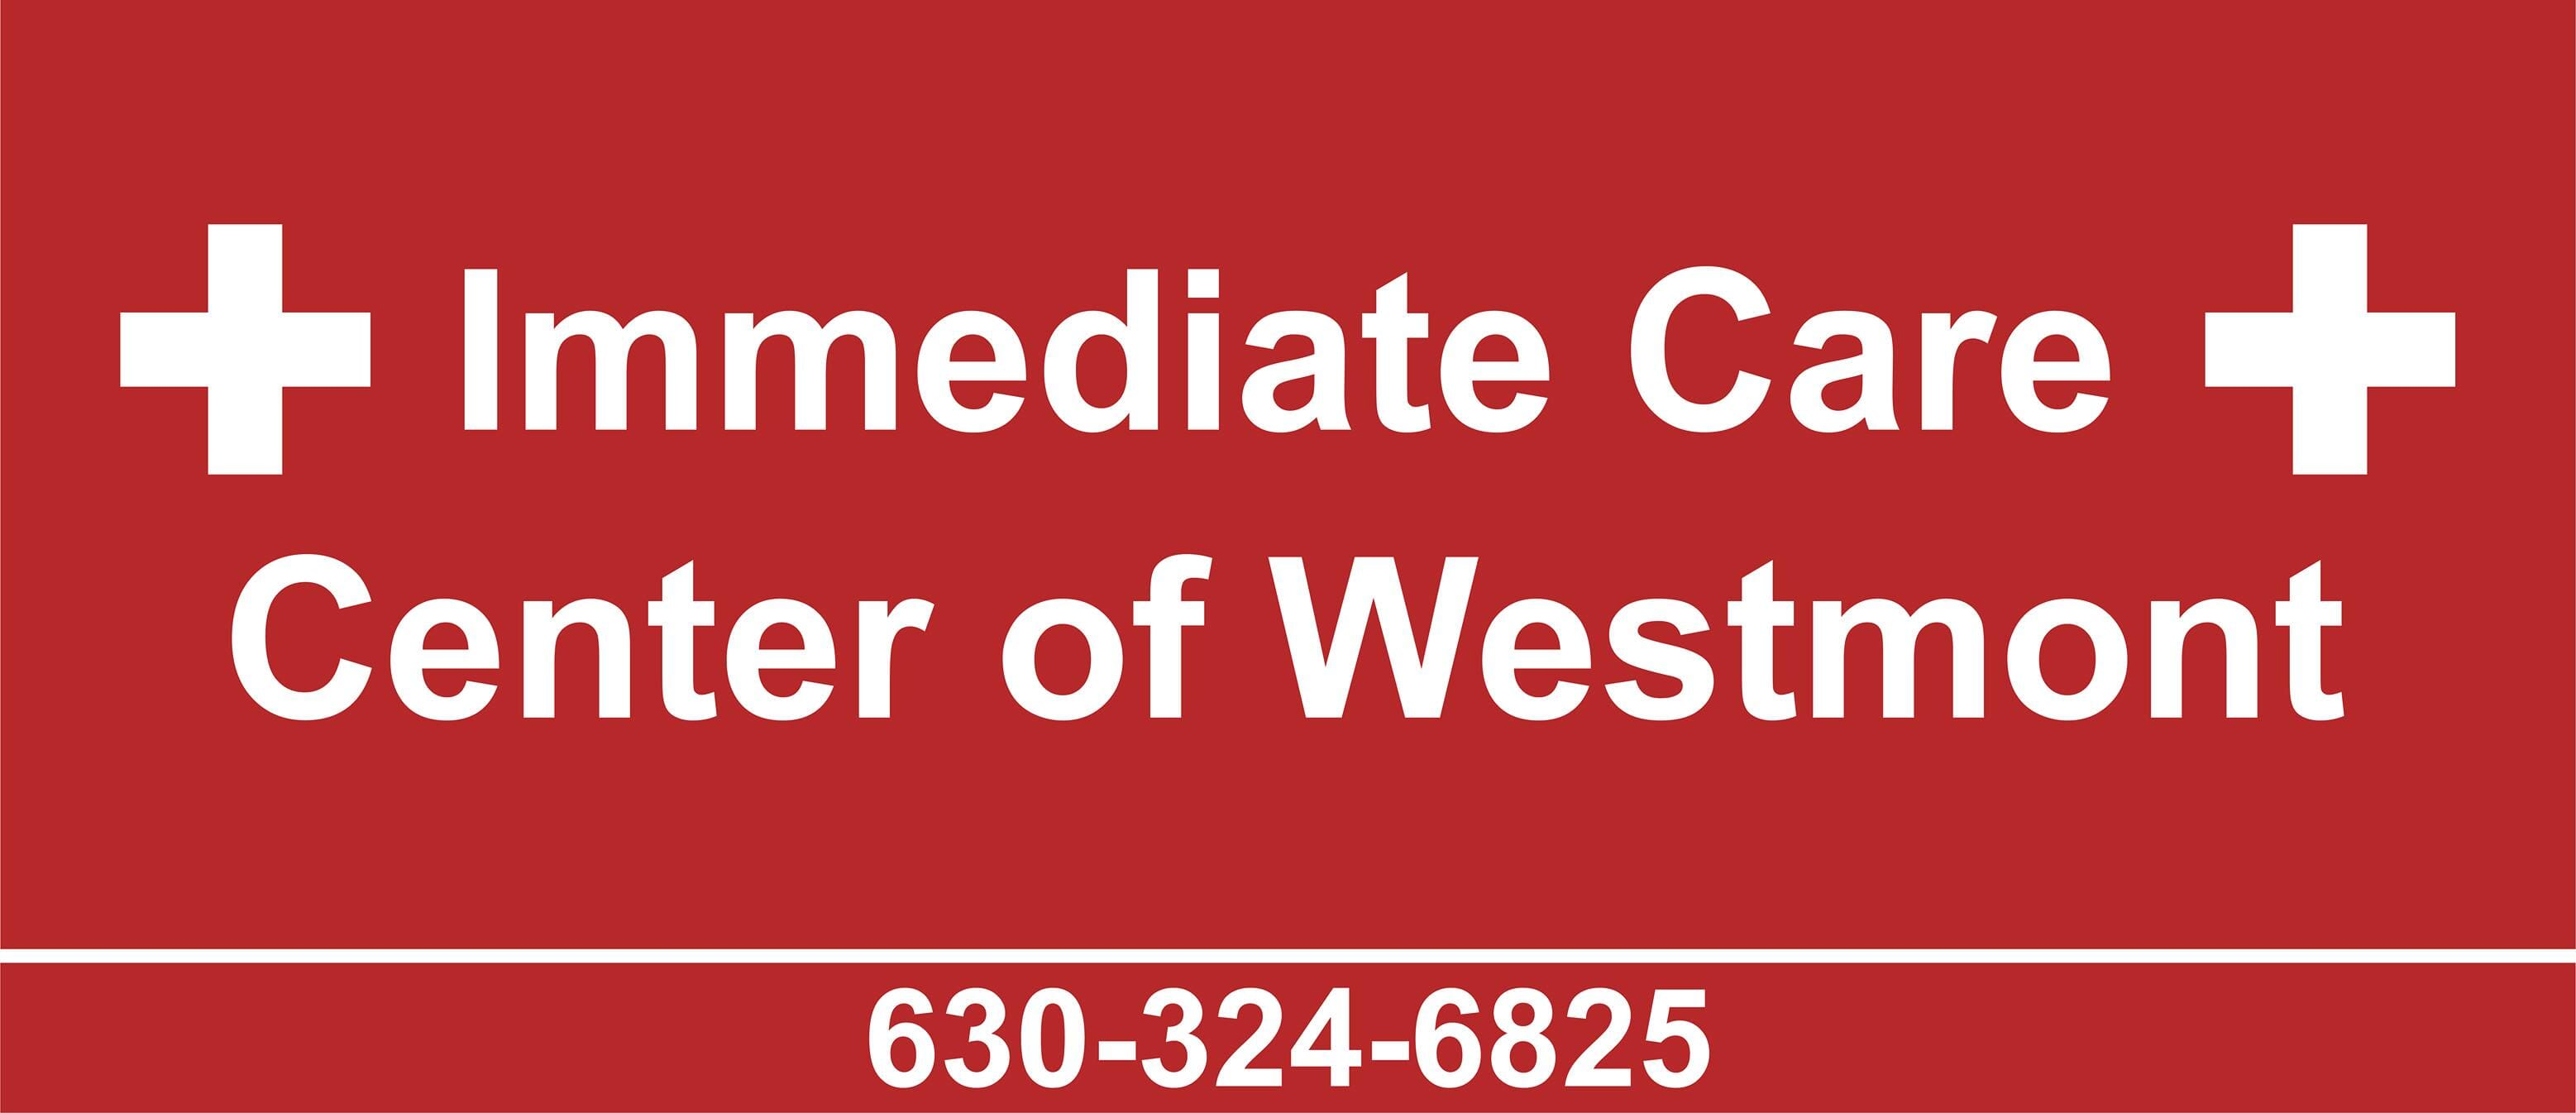 Urgent Care Immediate Care center of Westmont image 3